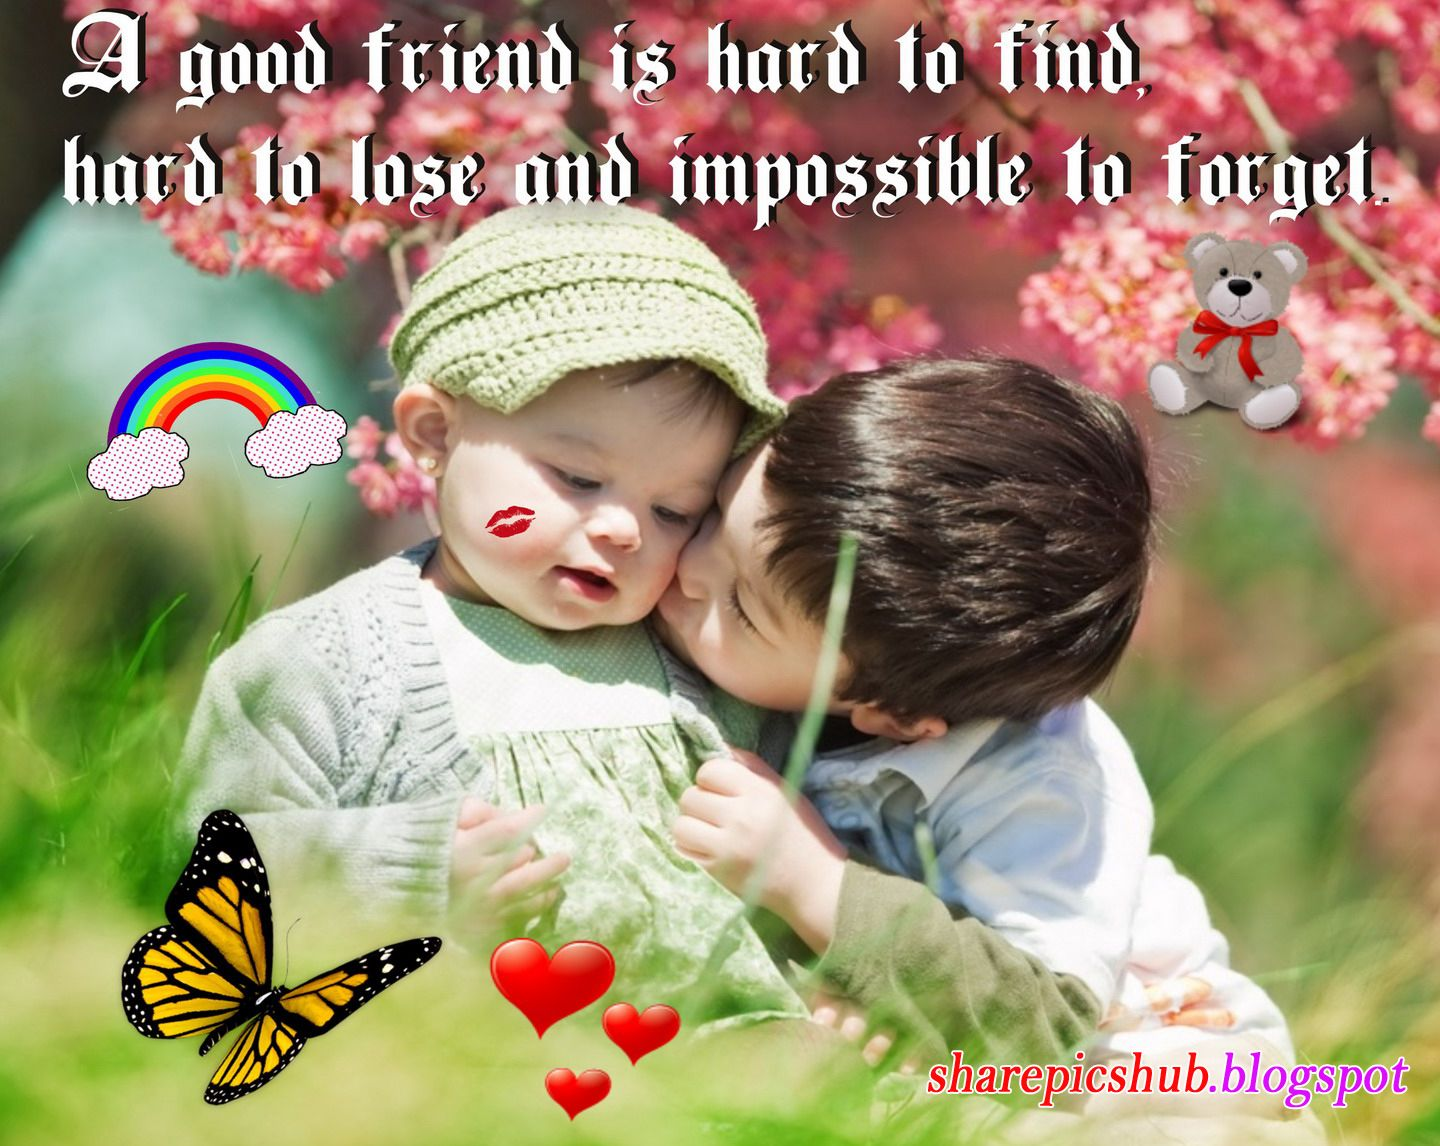 Funny Friendship Quotes For Facebook